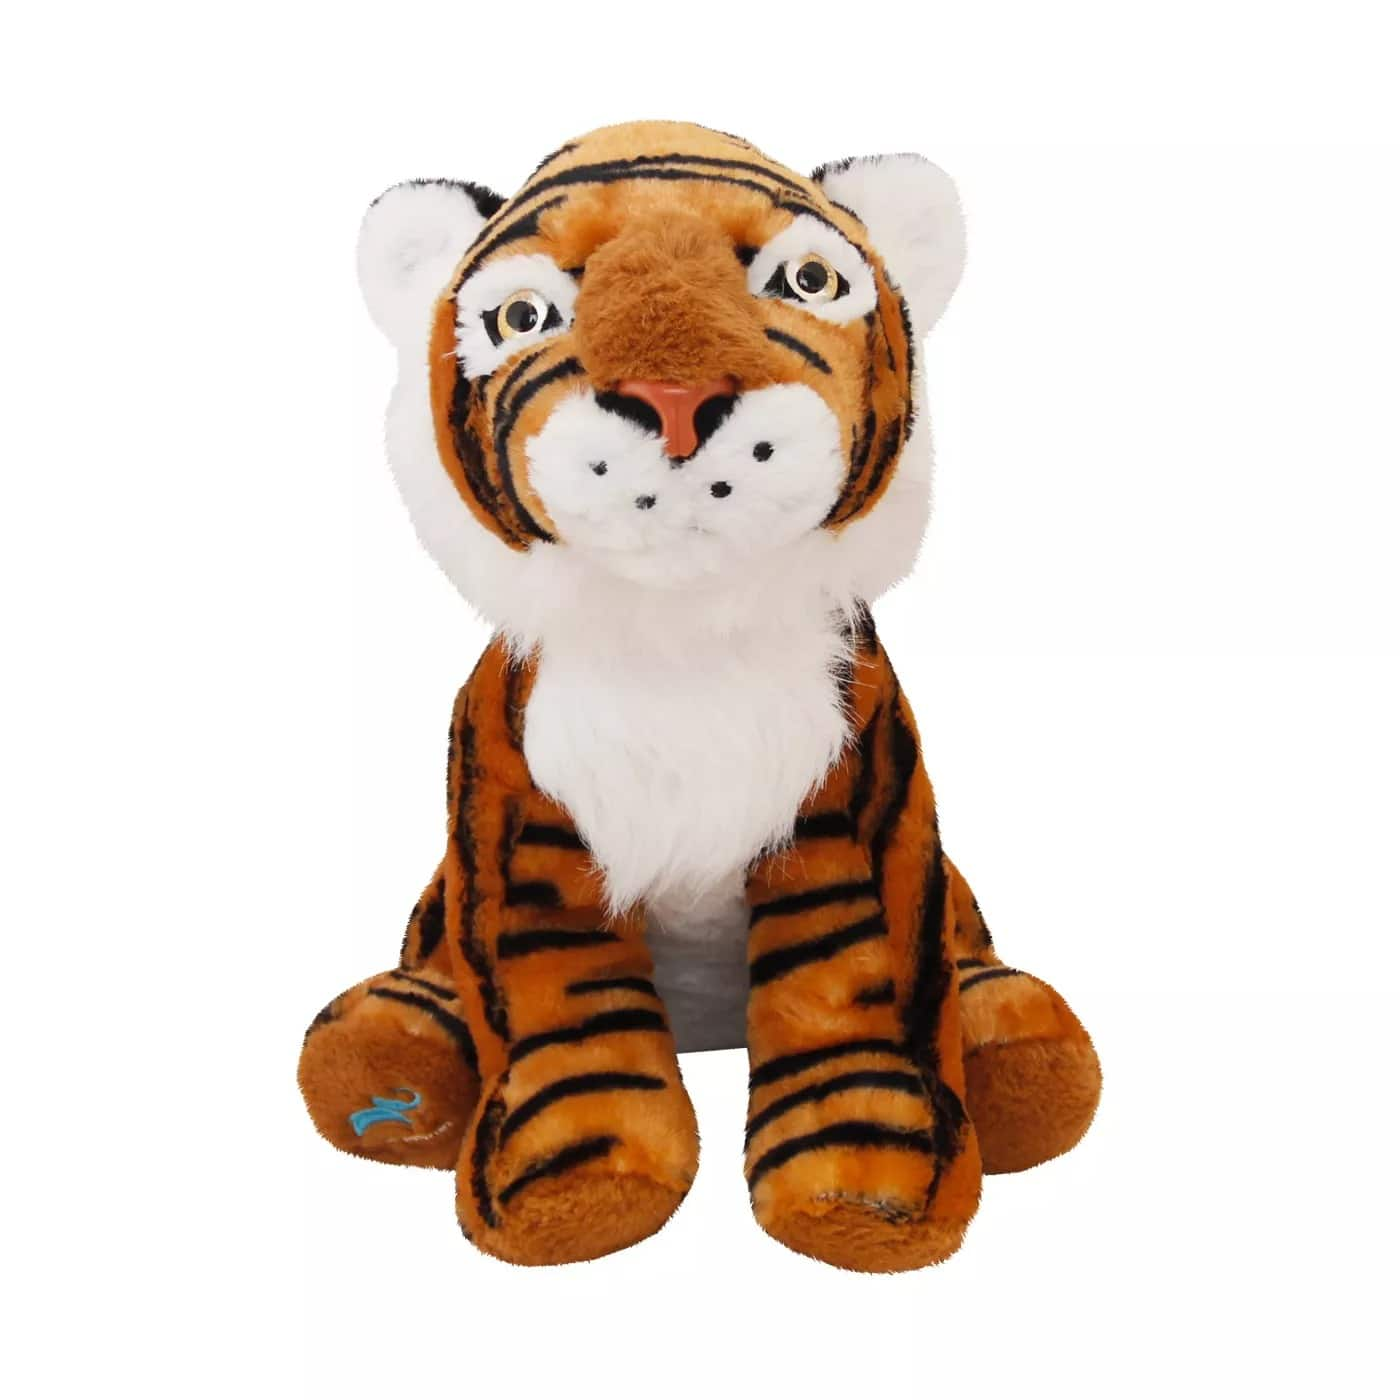 """Animal Planet 16"""" Tall Plush Animals (Tiger or Giraffe) $9 + 2.5% Slickdeals Cashback (PC Req'd) at Target + Free Curbside Pickup"""